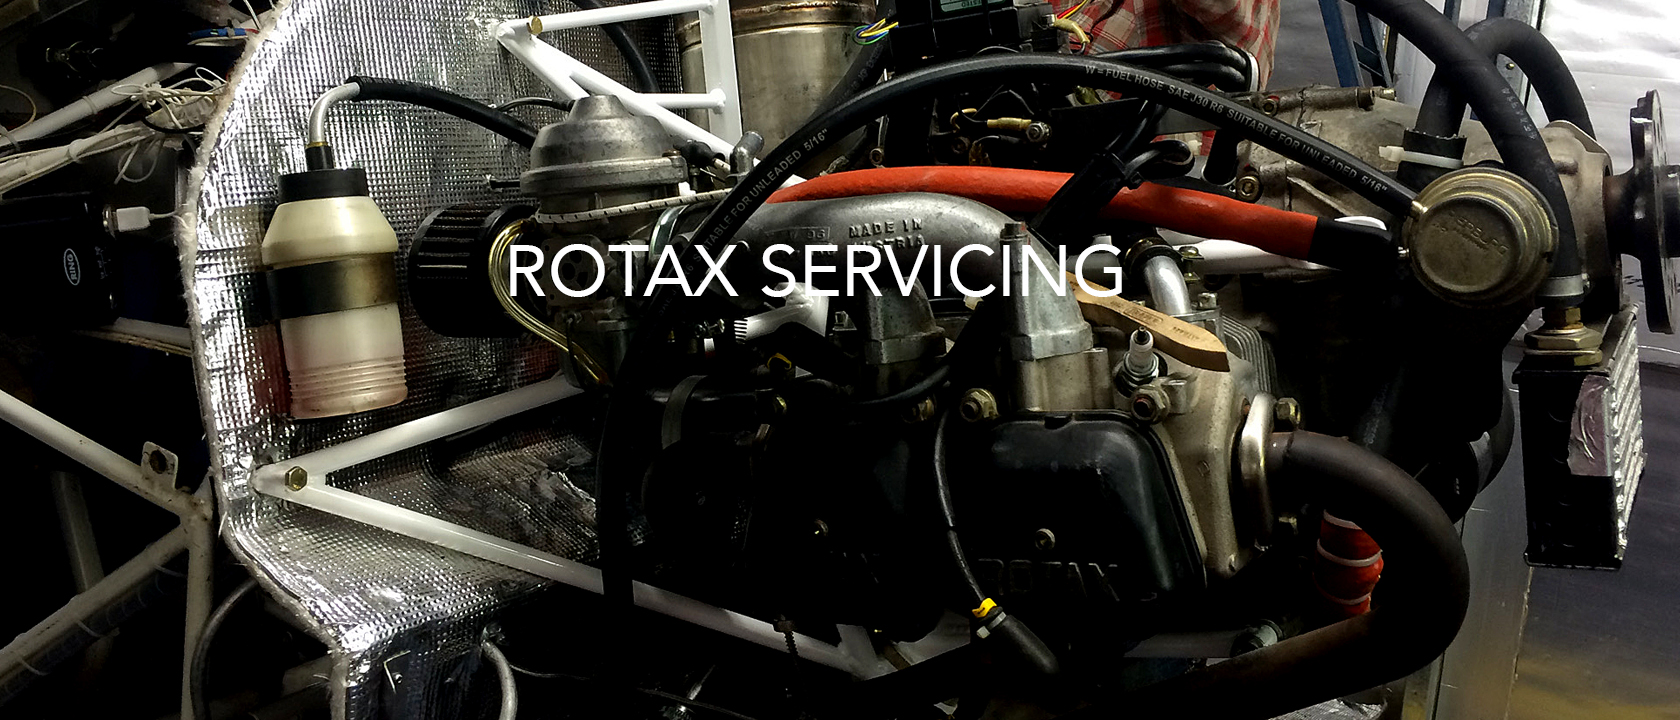 Rotax Servicing